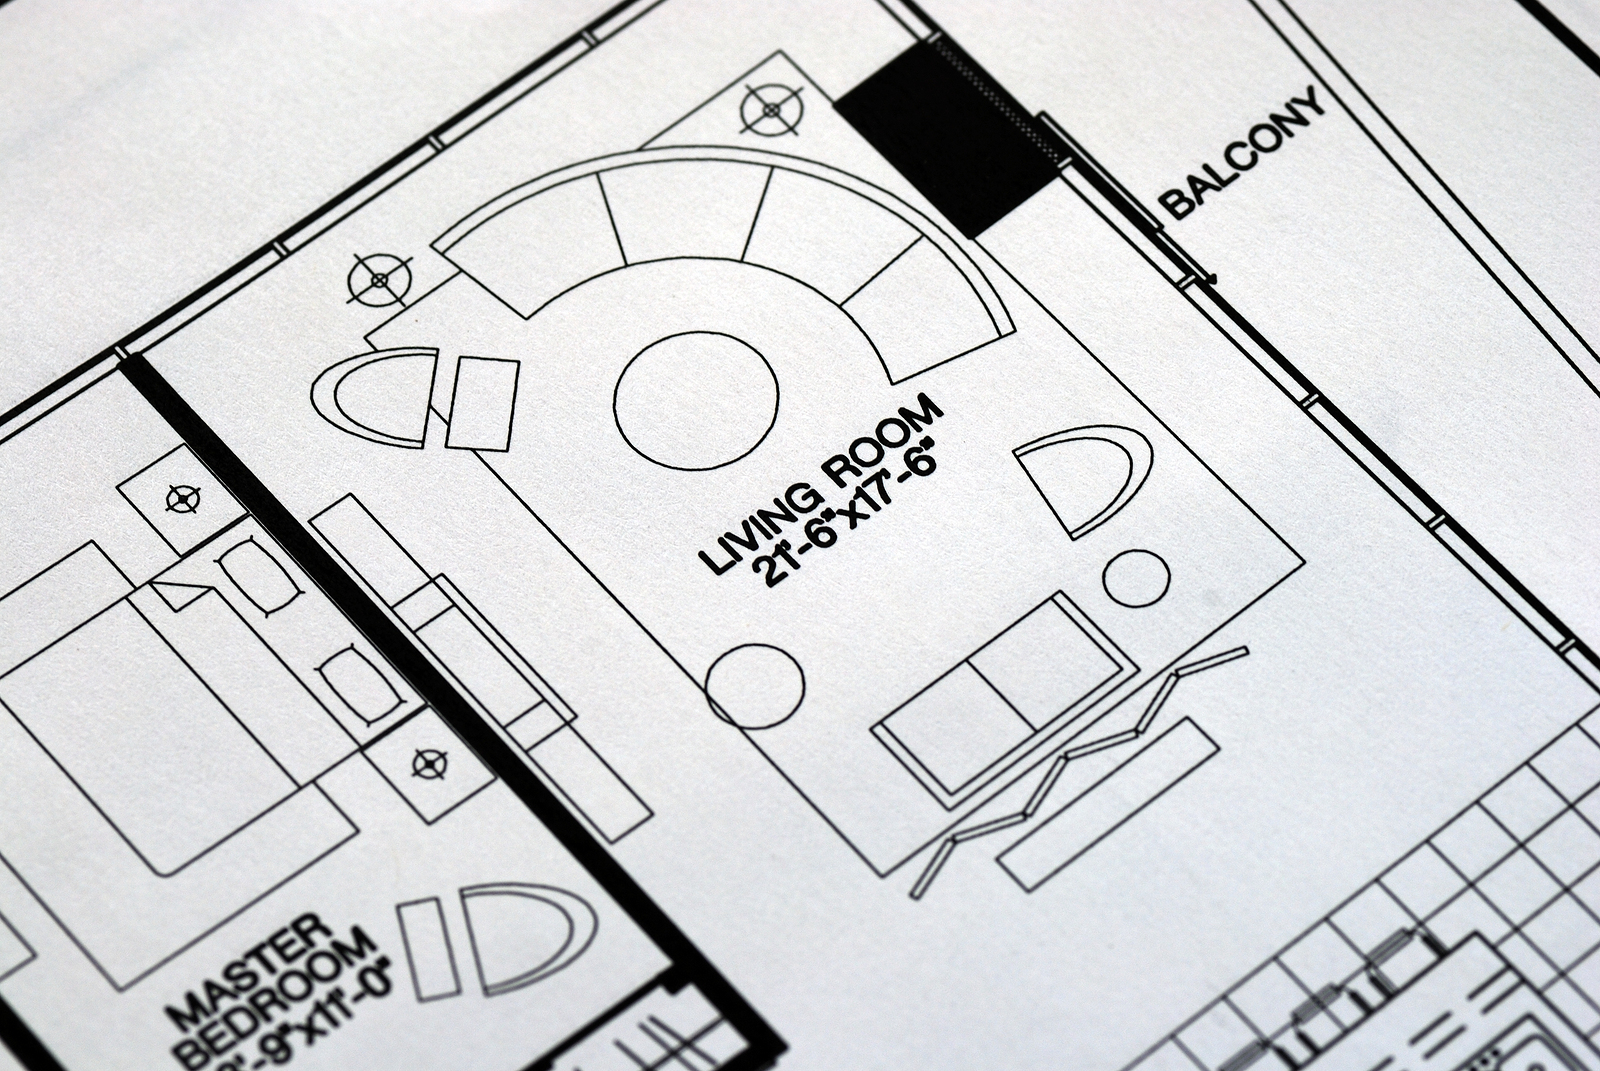 A floor plan focused on the living room and balcony